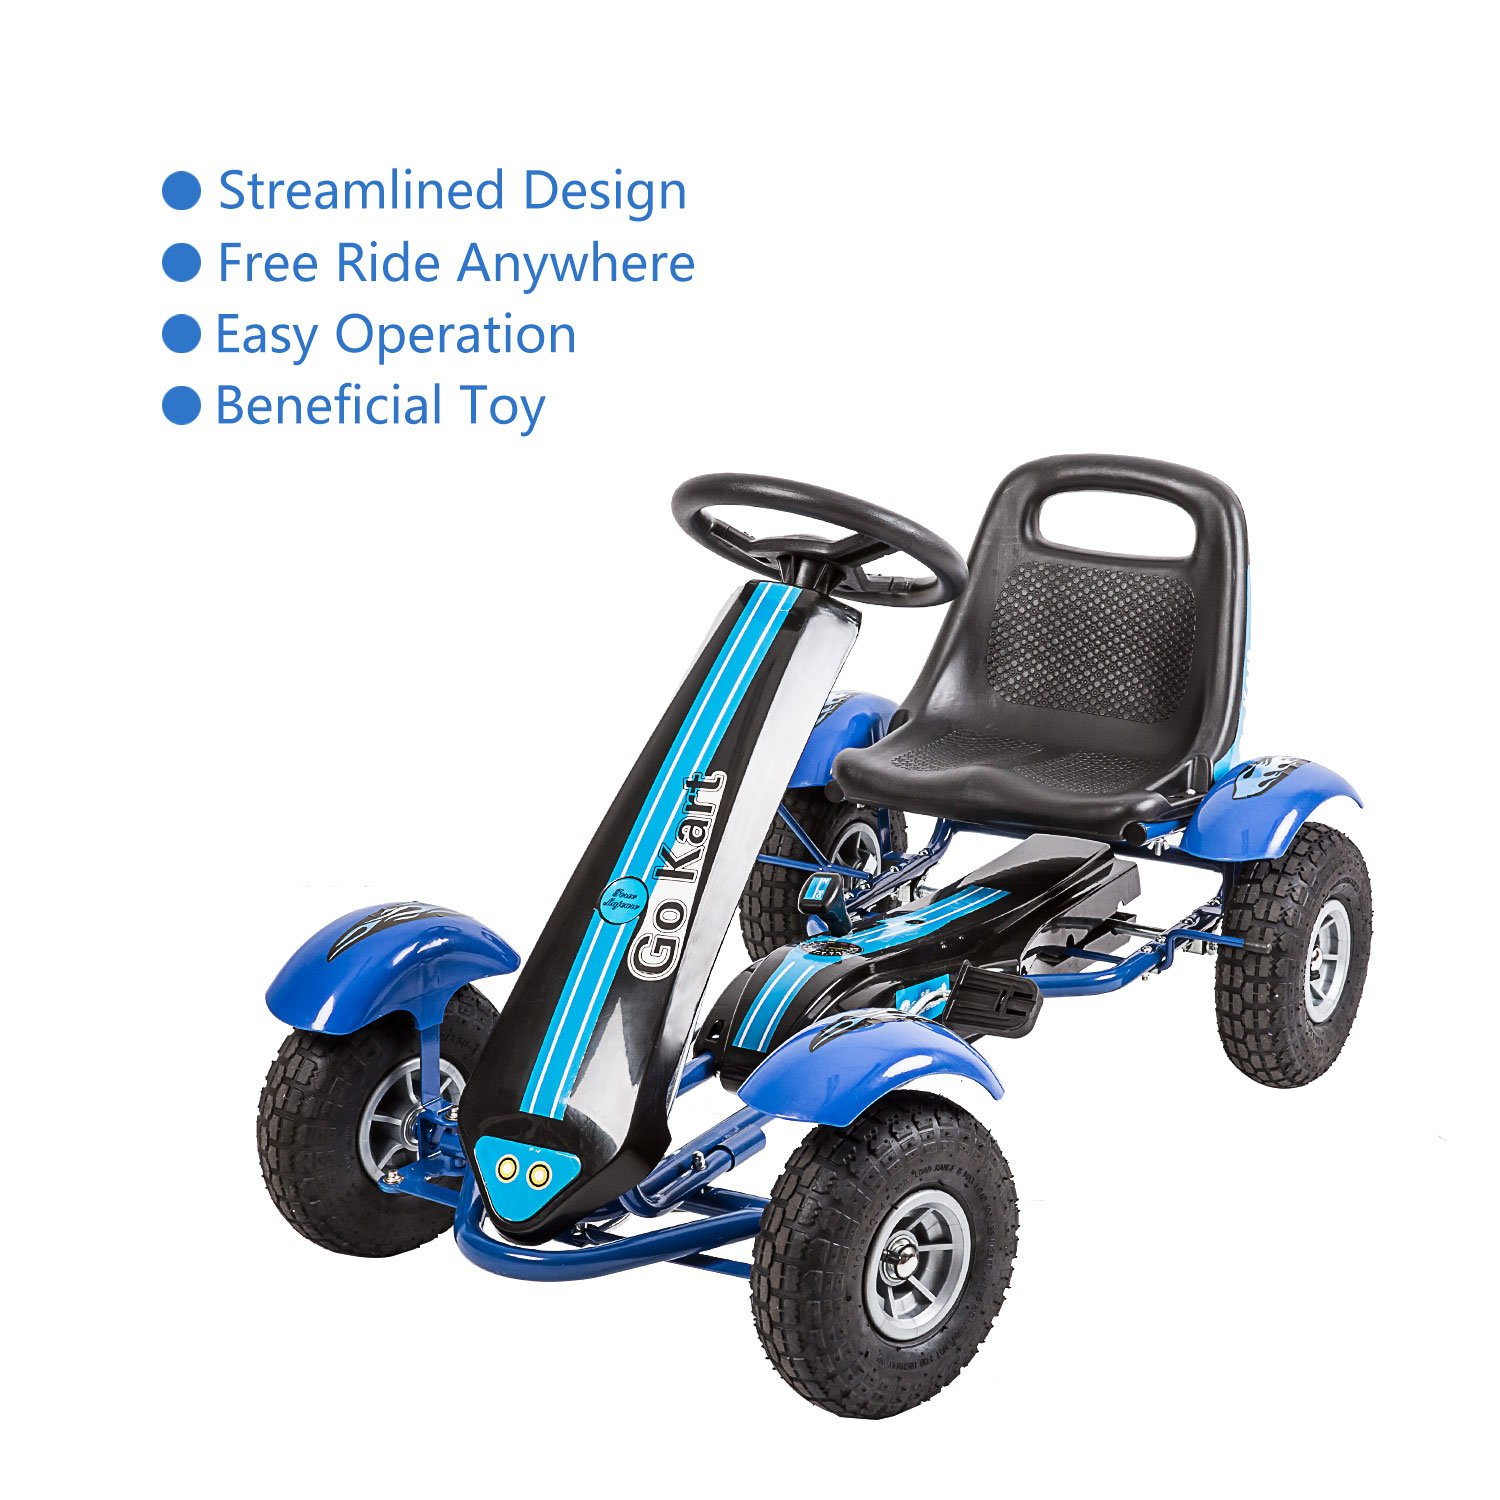 Amazon.com: Kinbor Go Kart/Pedal Car,Pedal Powered Ride On Toys for Boys &  Girls with Adjustable Seat Blue: Toys & Games